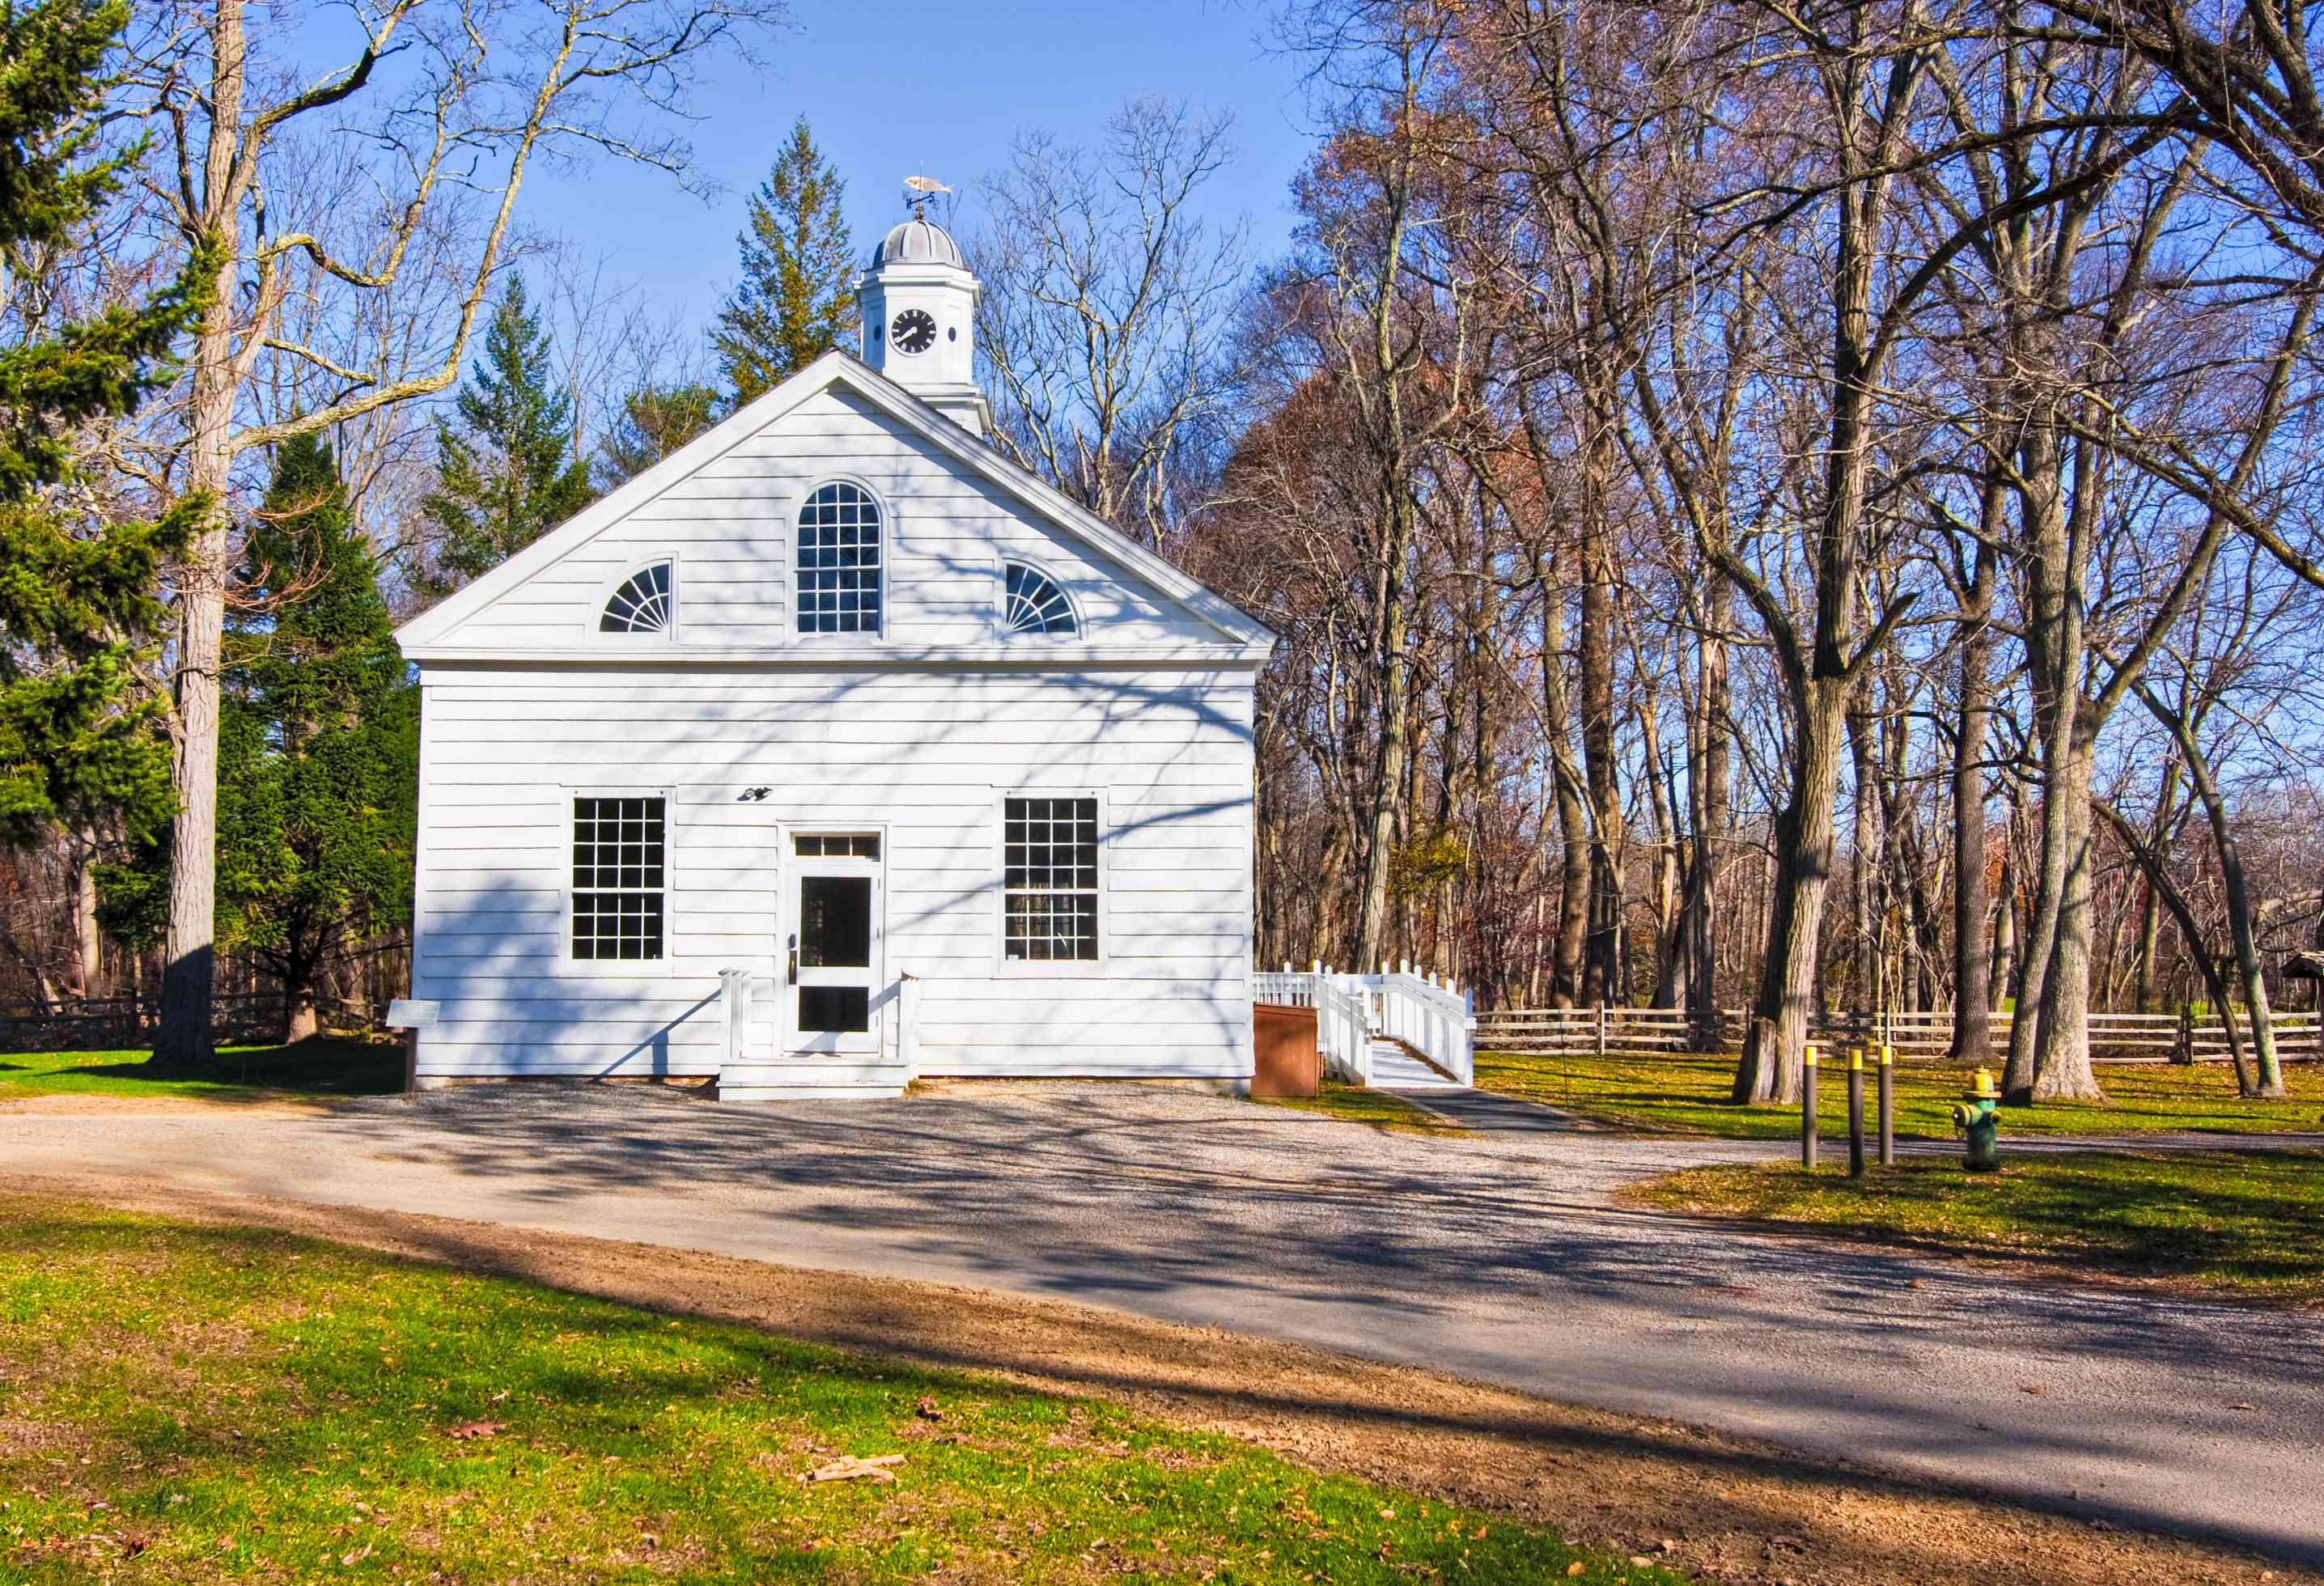 An old, restored church in Allaire Village, New Jersey